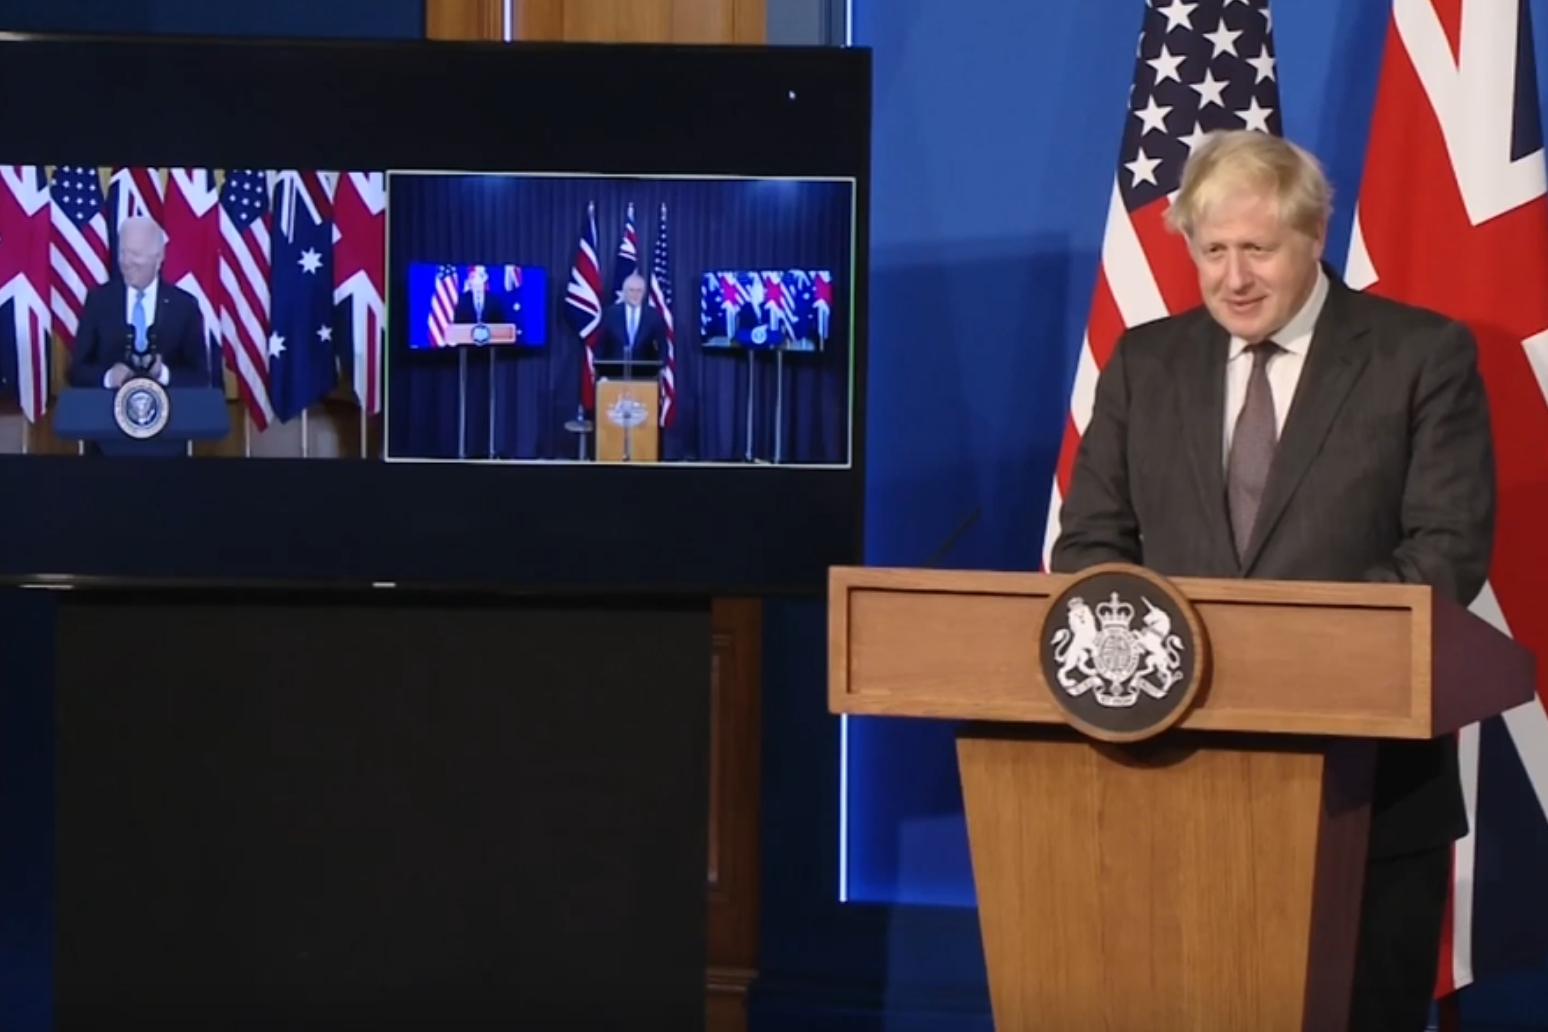 UK, US and Australia form defence alliance in bid to keep China in check